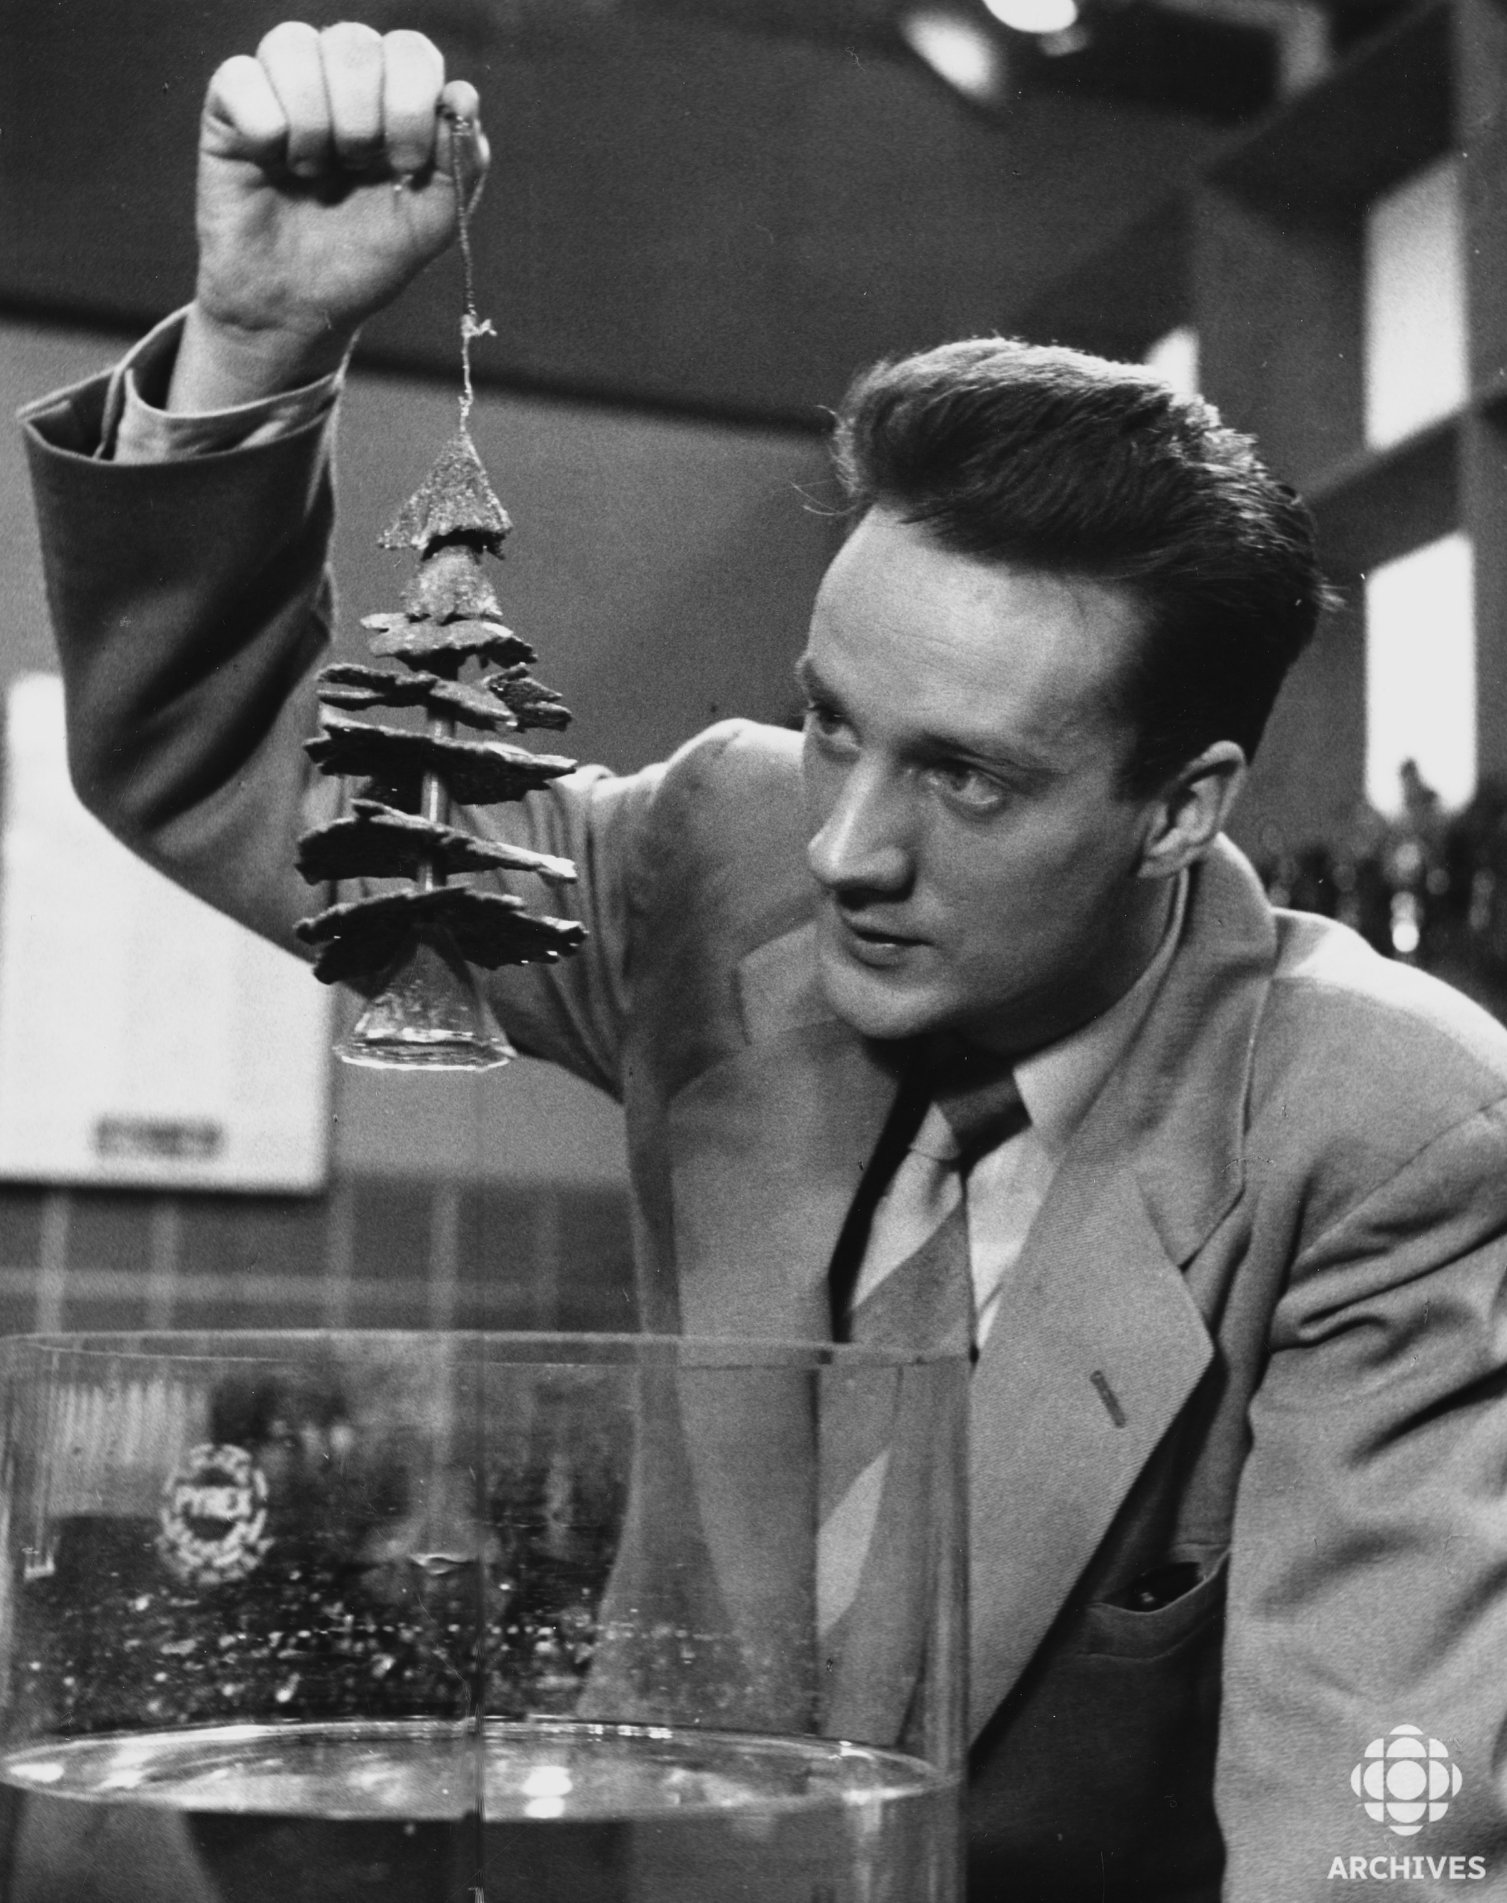 Marc Favreau in La Science en Pantoufles (1954)